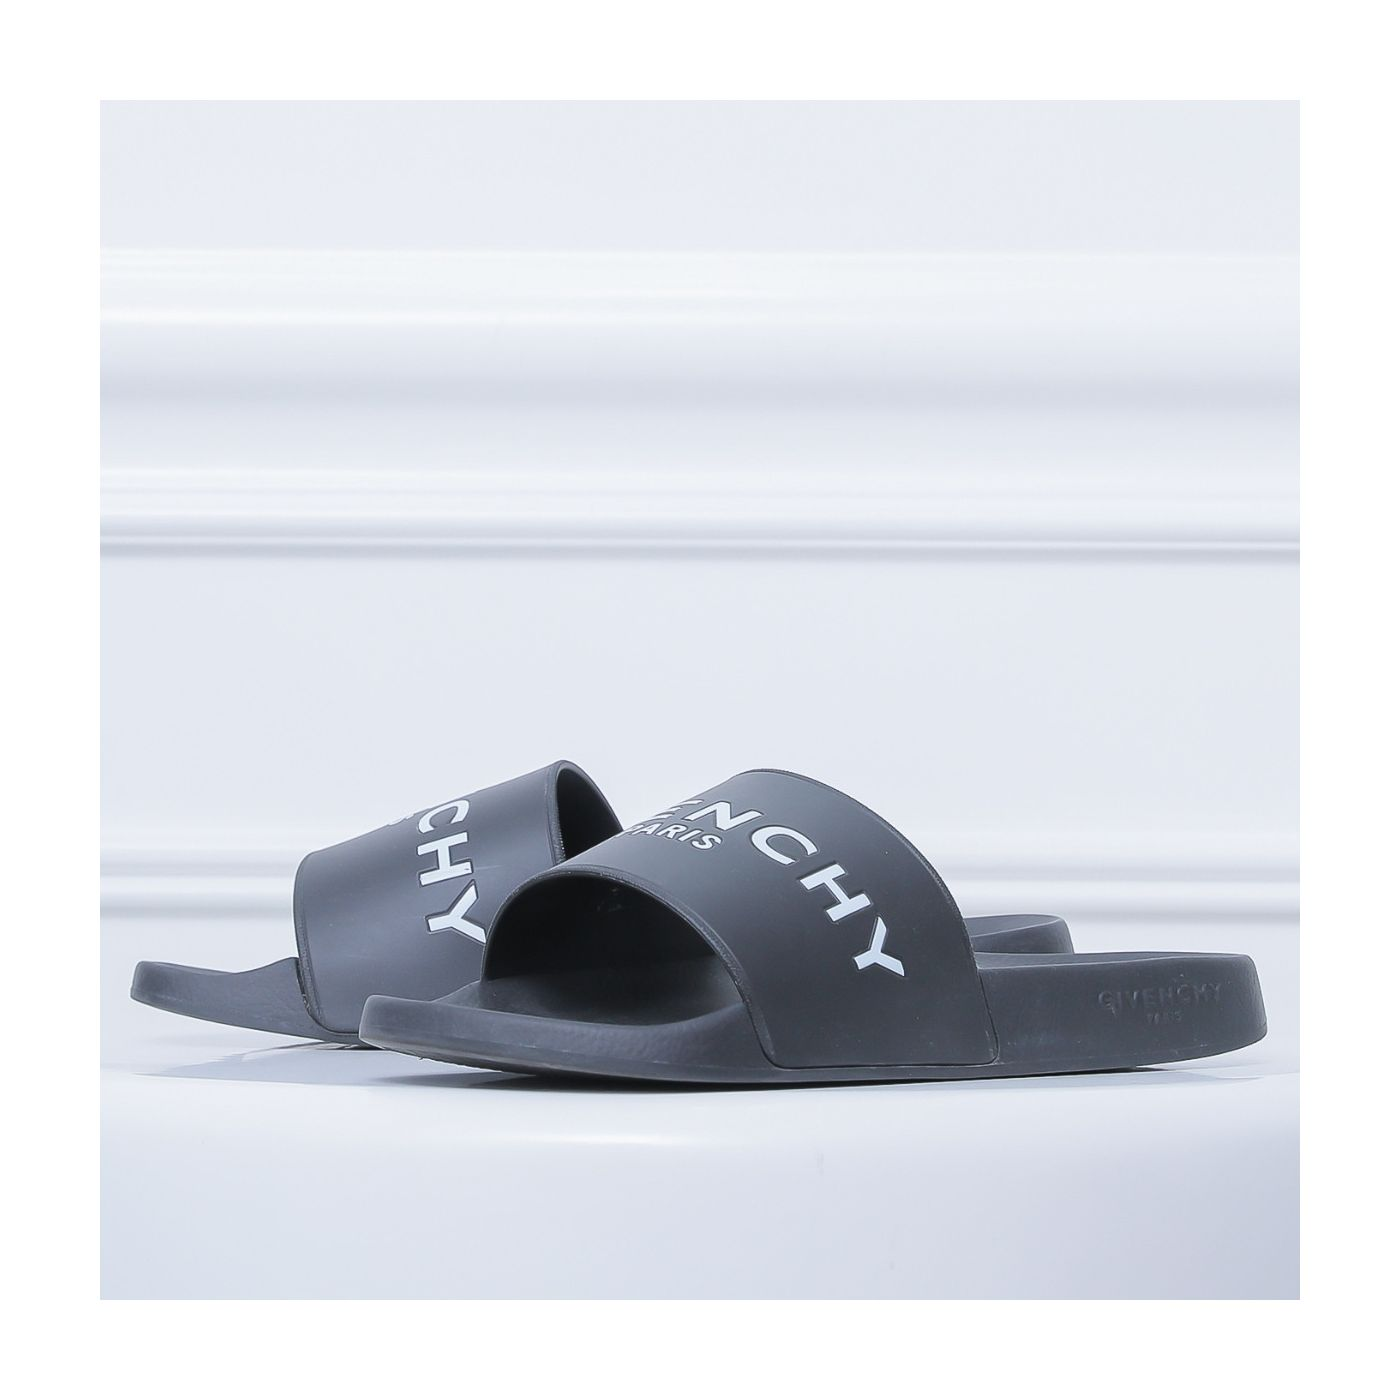 Givenchy Black Paris Sandals 43